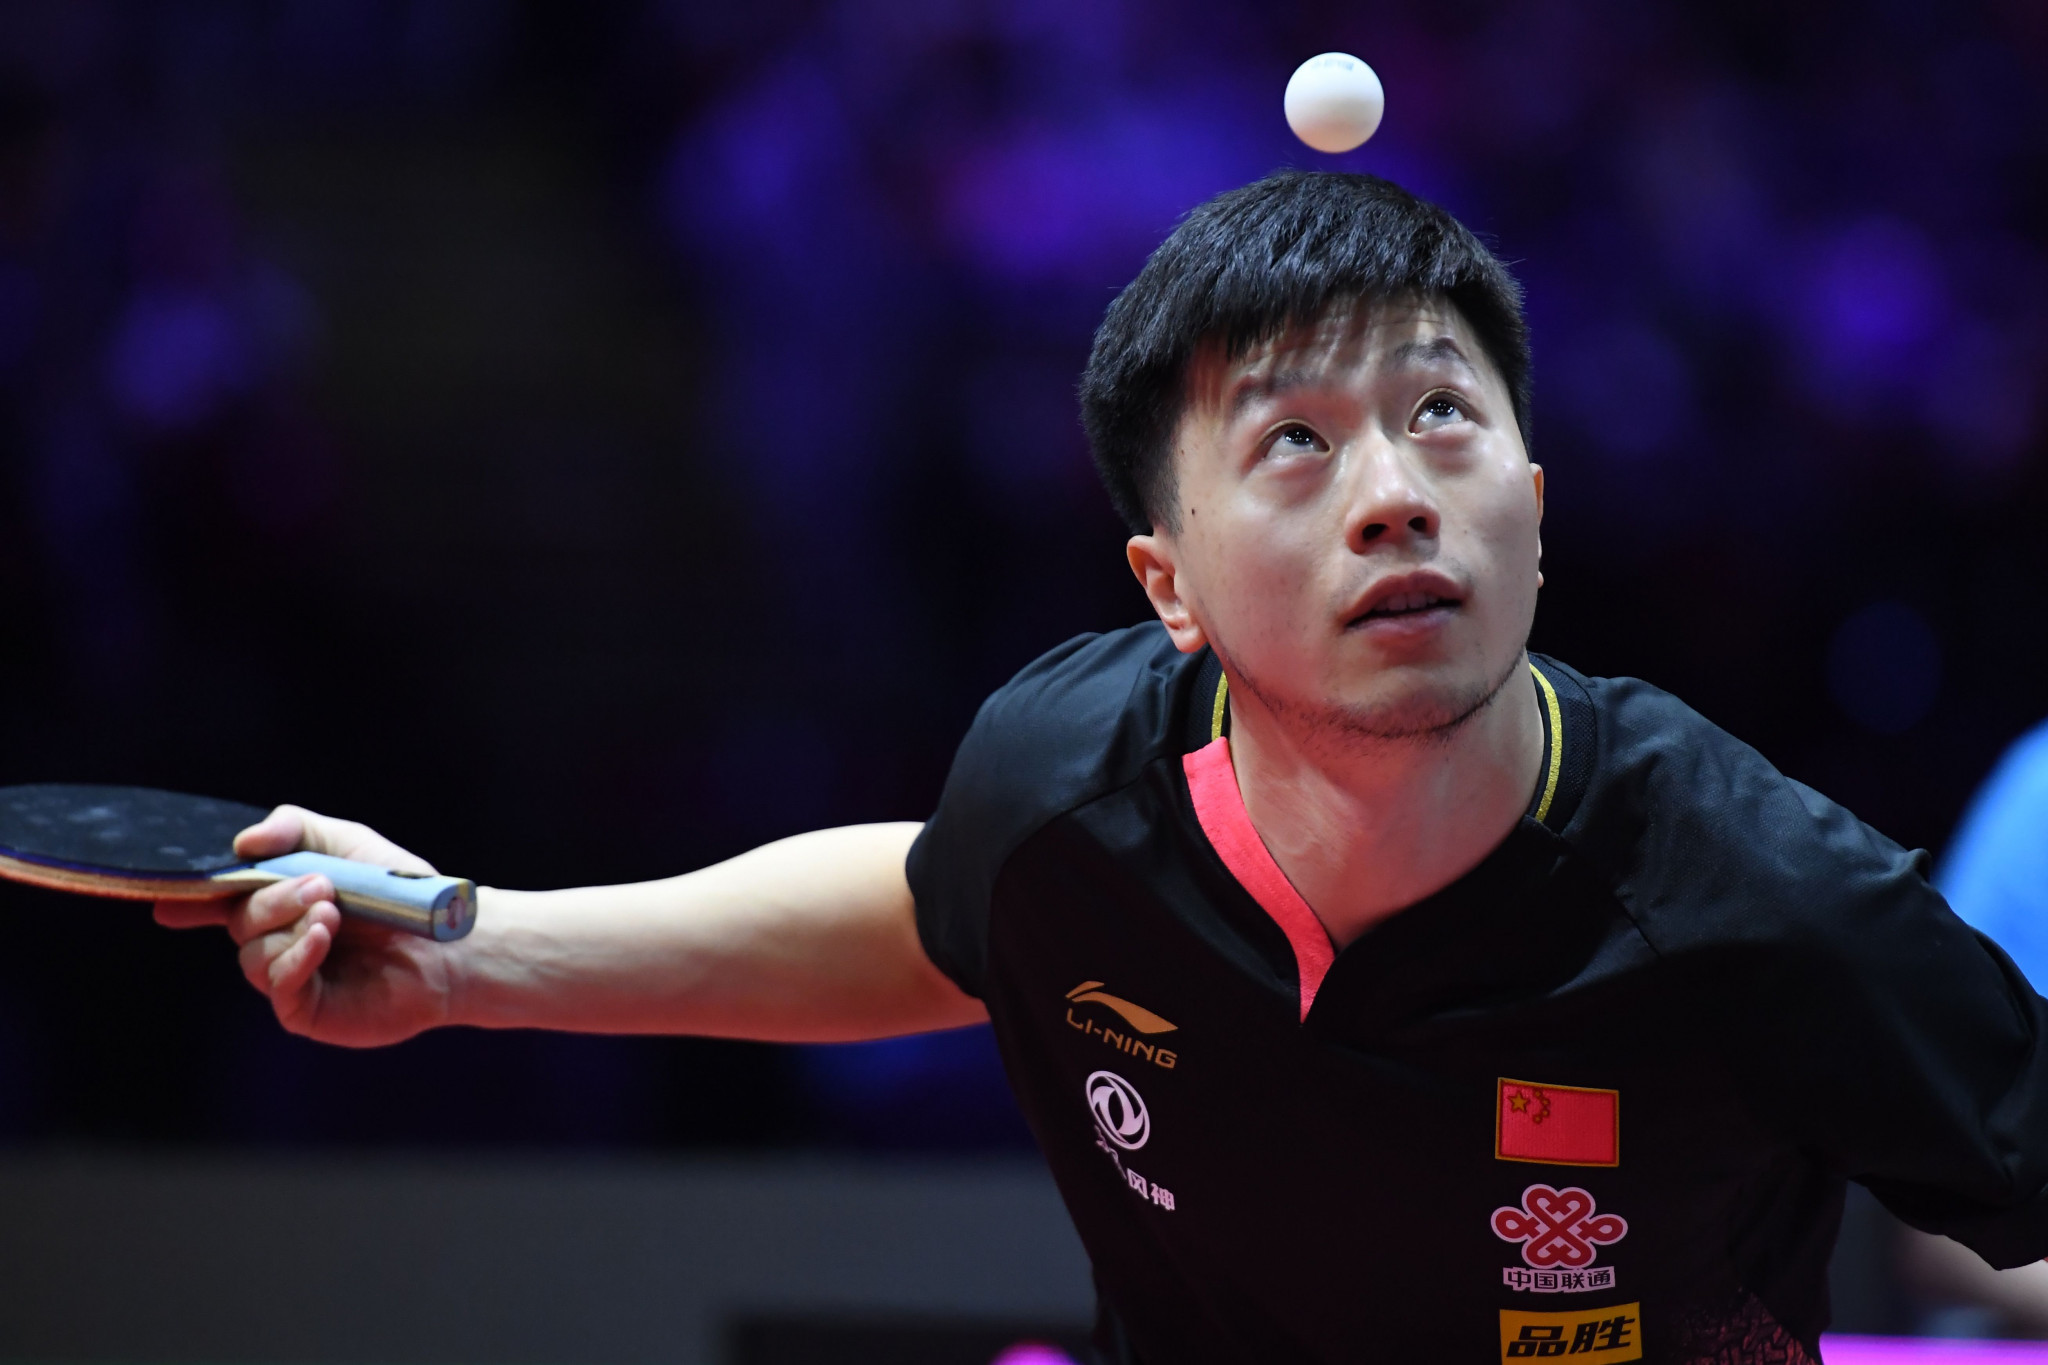 This year's ITTF World Championships were held in Budapest, where China's Ma Long successfully defended his men's singles title ©Getty Images